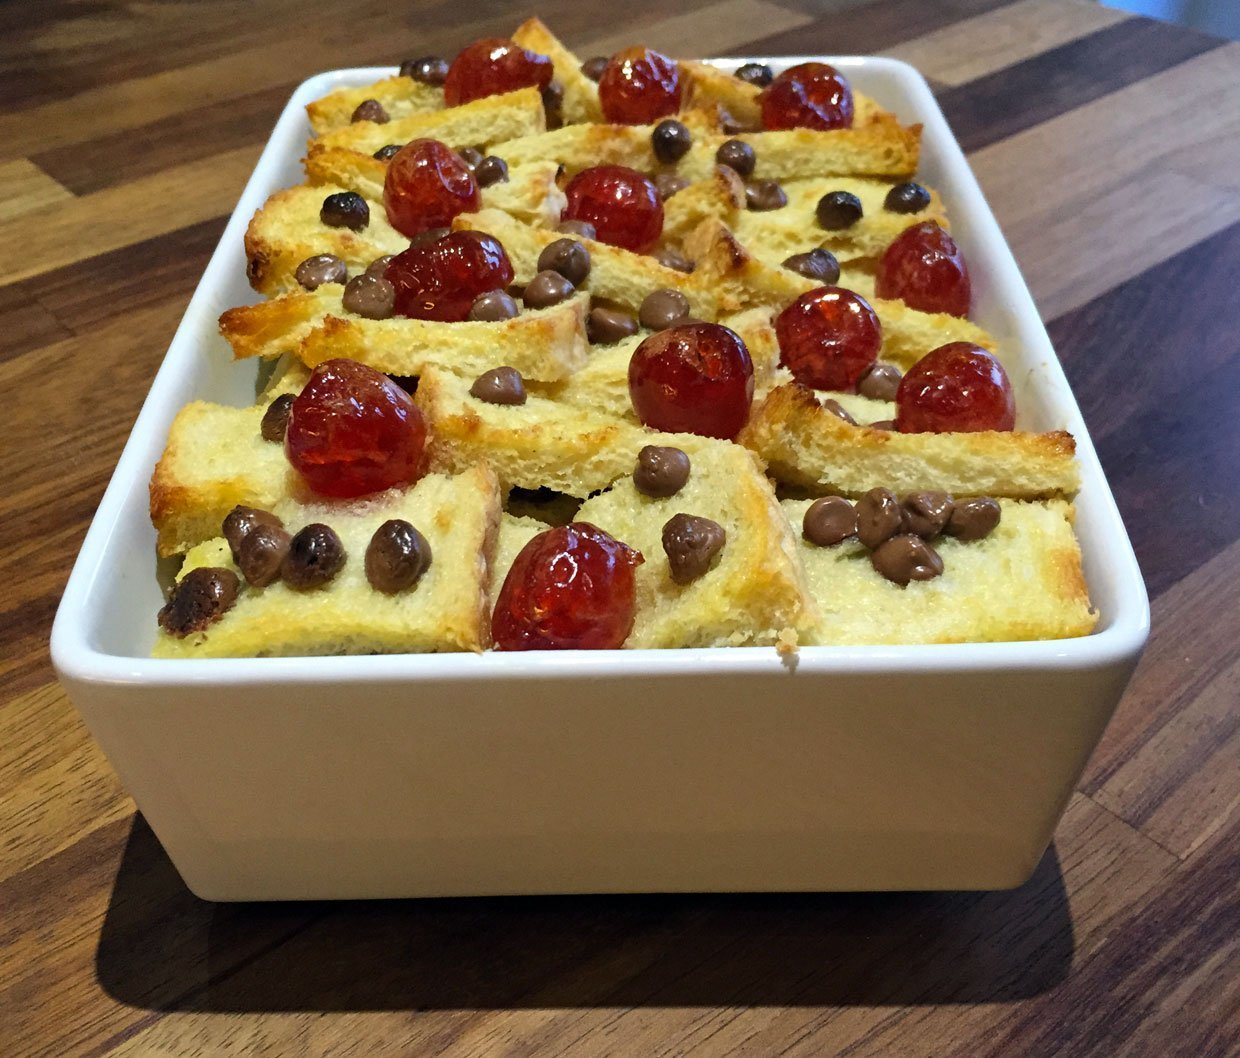 IMG_7564 Cherry and chocolate chip Bread and Butter Pudding